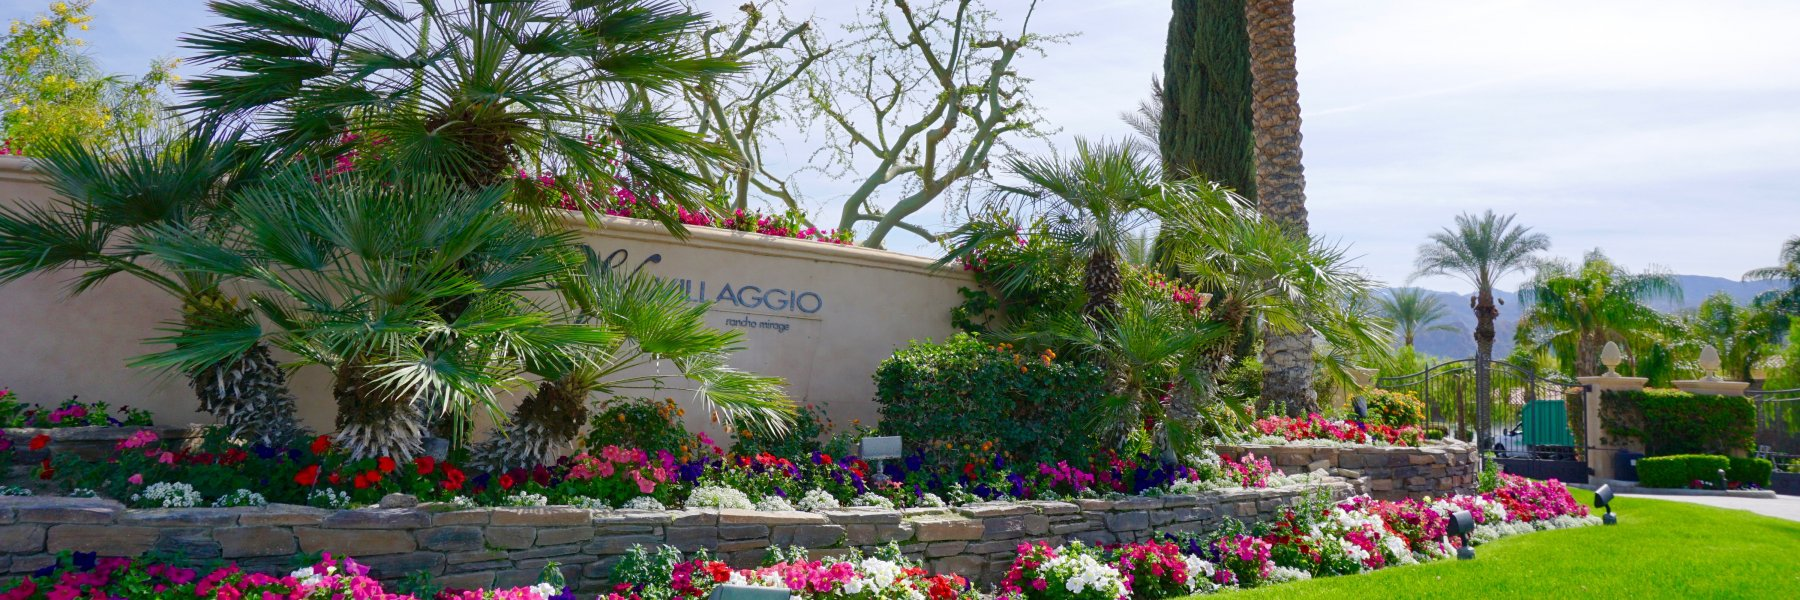 Villaggio on Sinatra is a community of homes in Rancho Mirage California